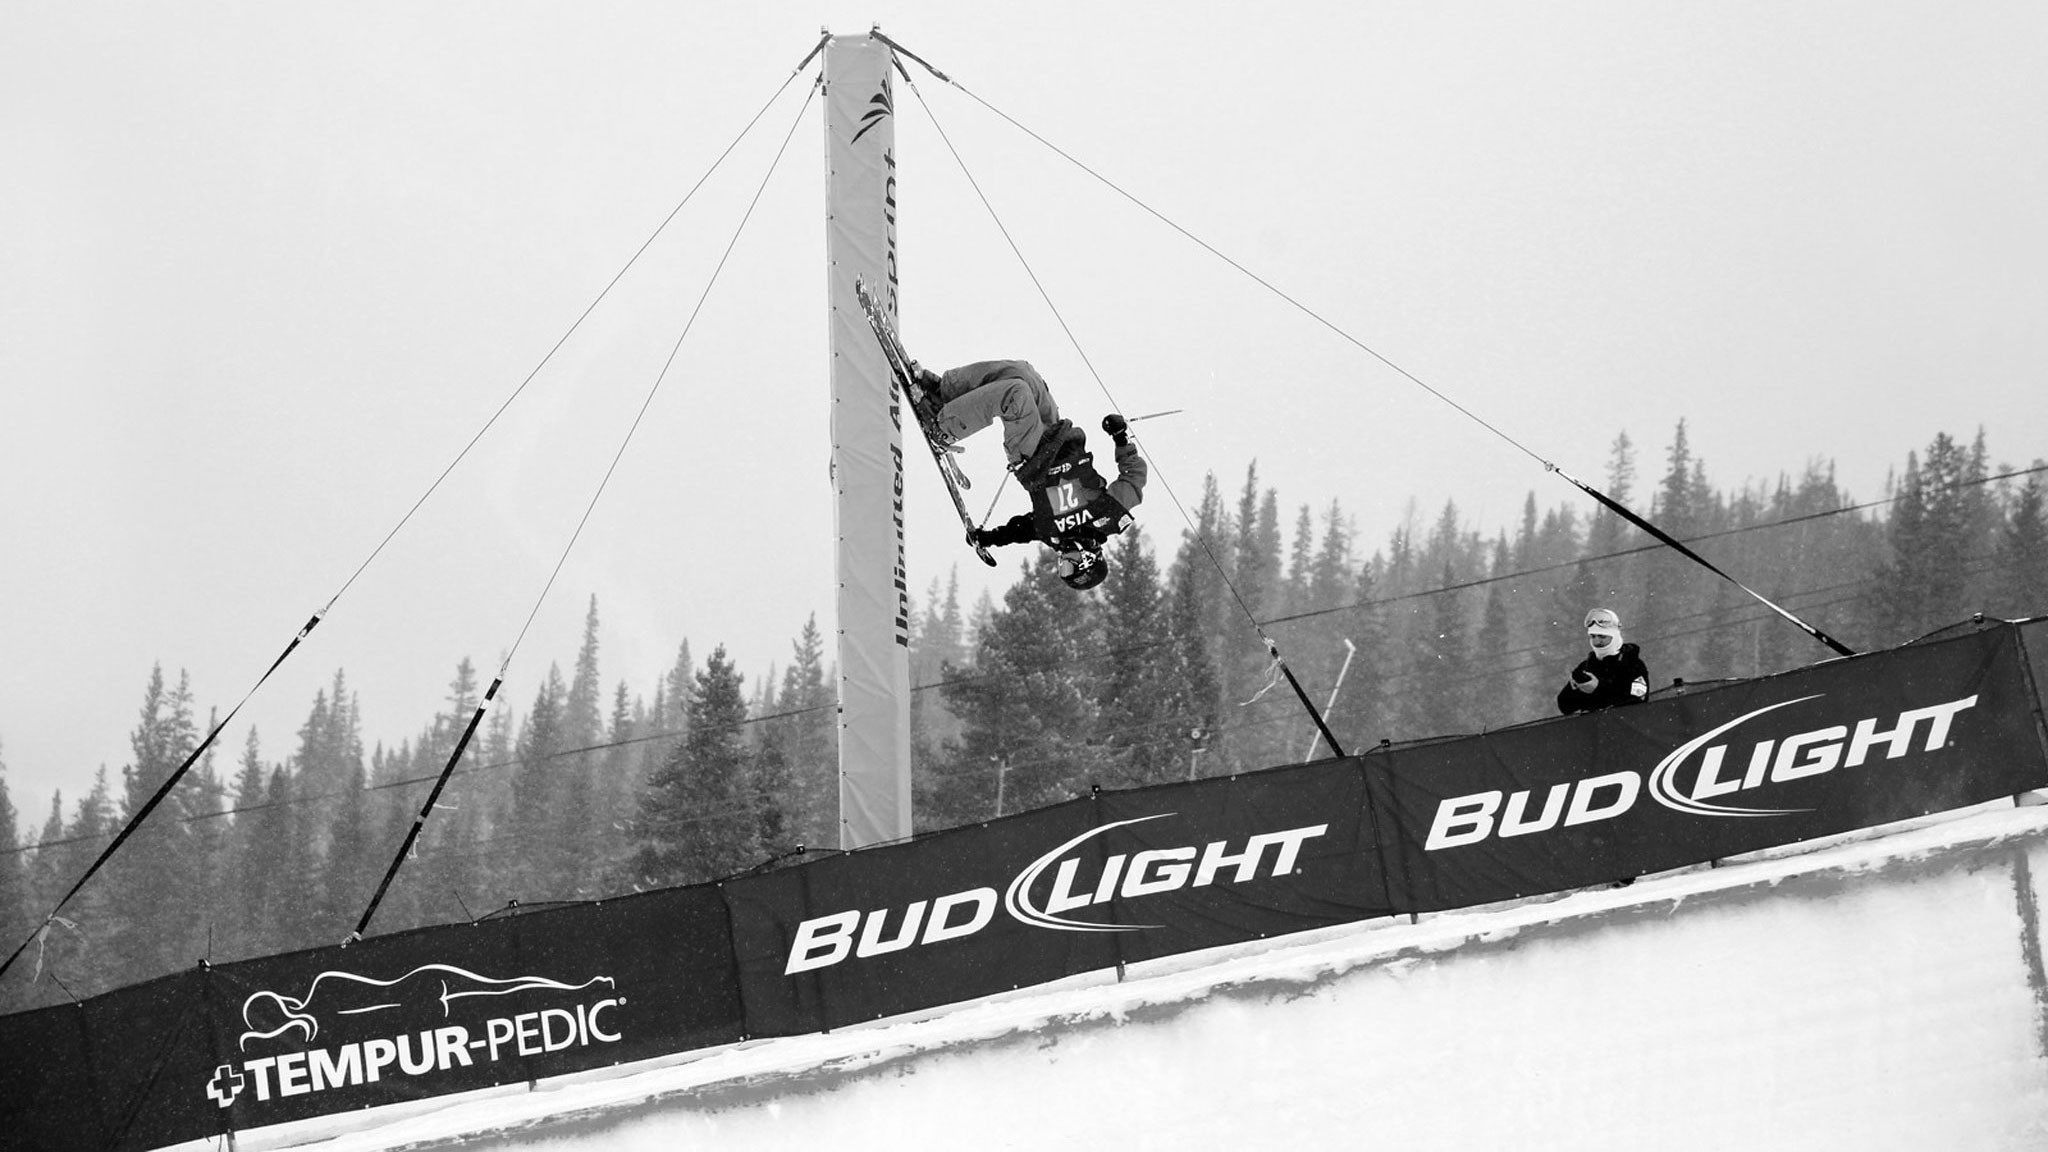 Aaron Blunck got second place at the recent U.S. Grand Prix.